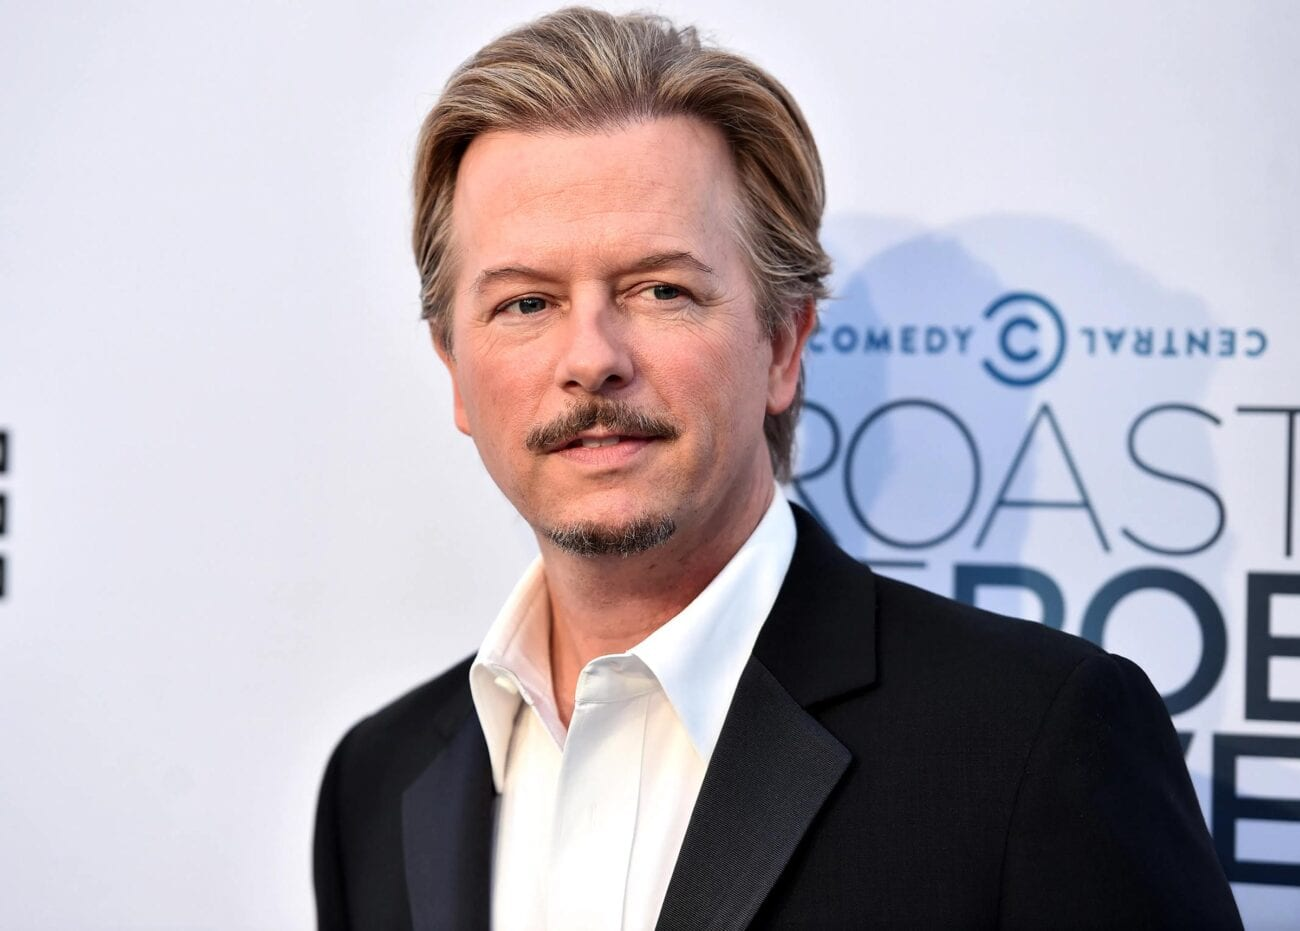 Hollywood comedy star David Spade is set to host the upcoming 'The Netflix Afterparty.' What does this mean for his net worth?